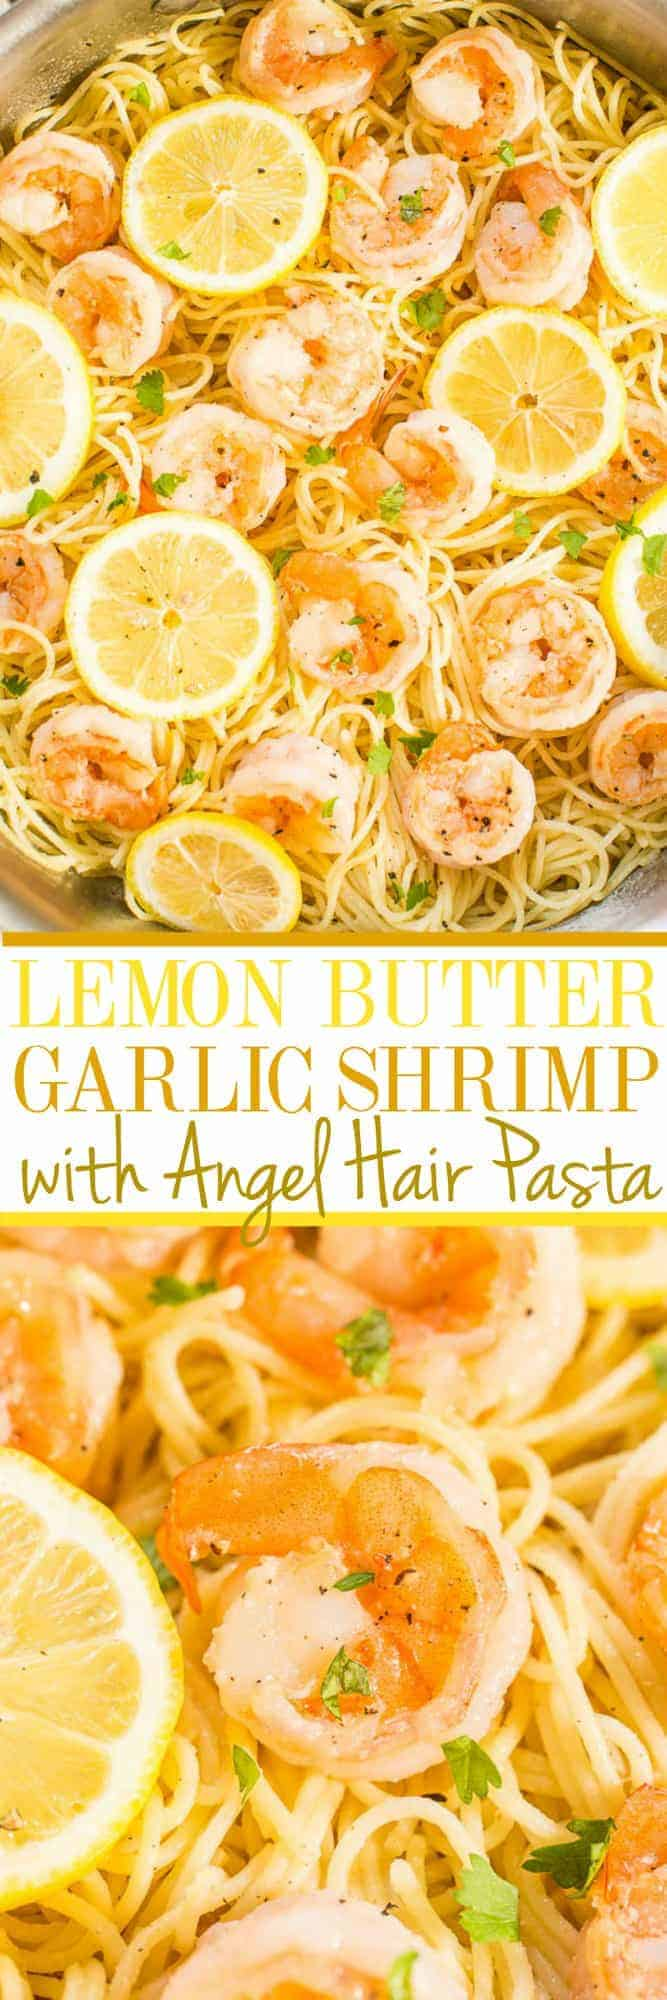 Easy Garlic And Lemon Shrimp Recipes — Dishmaps